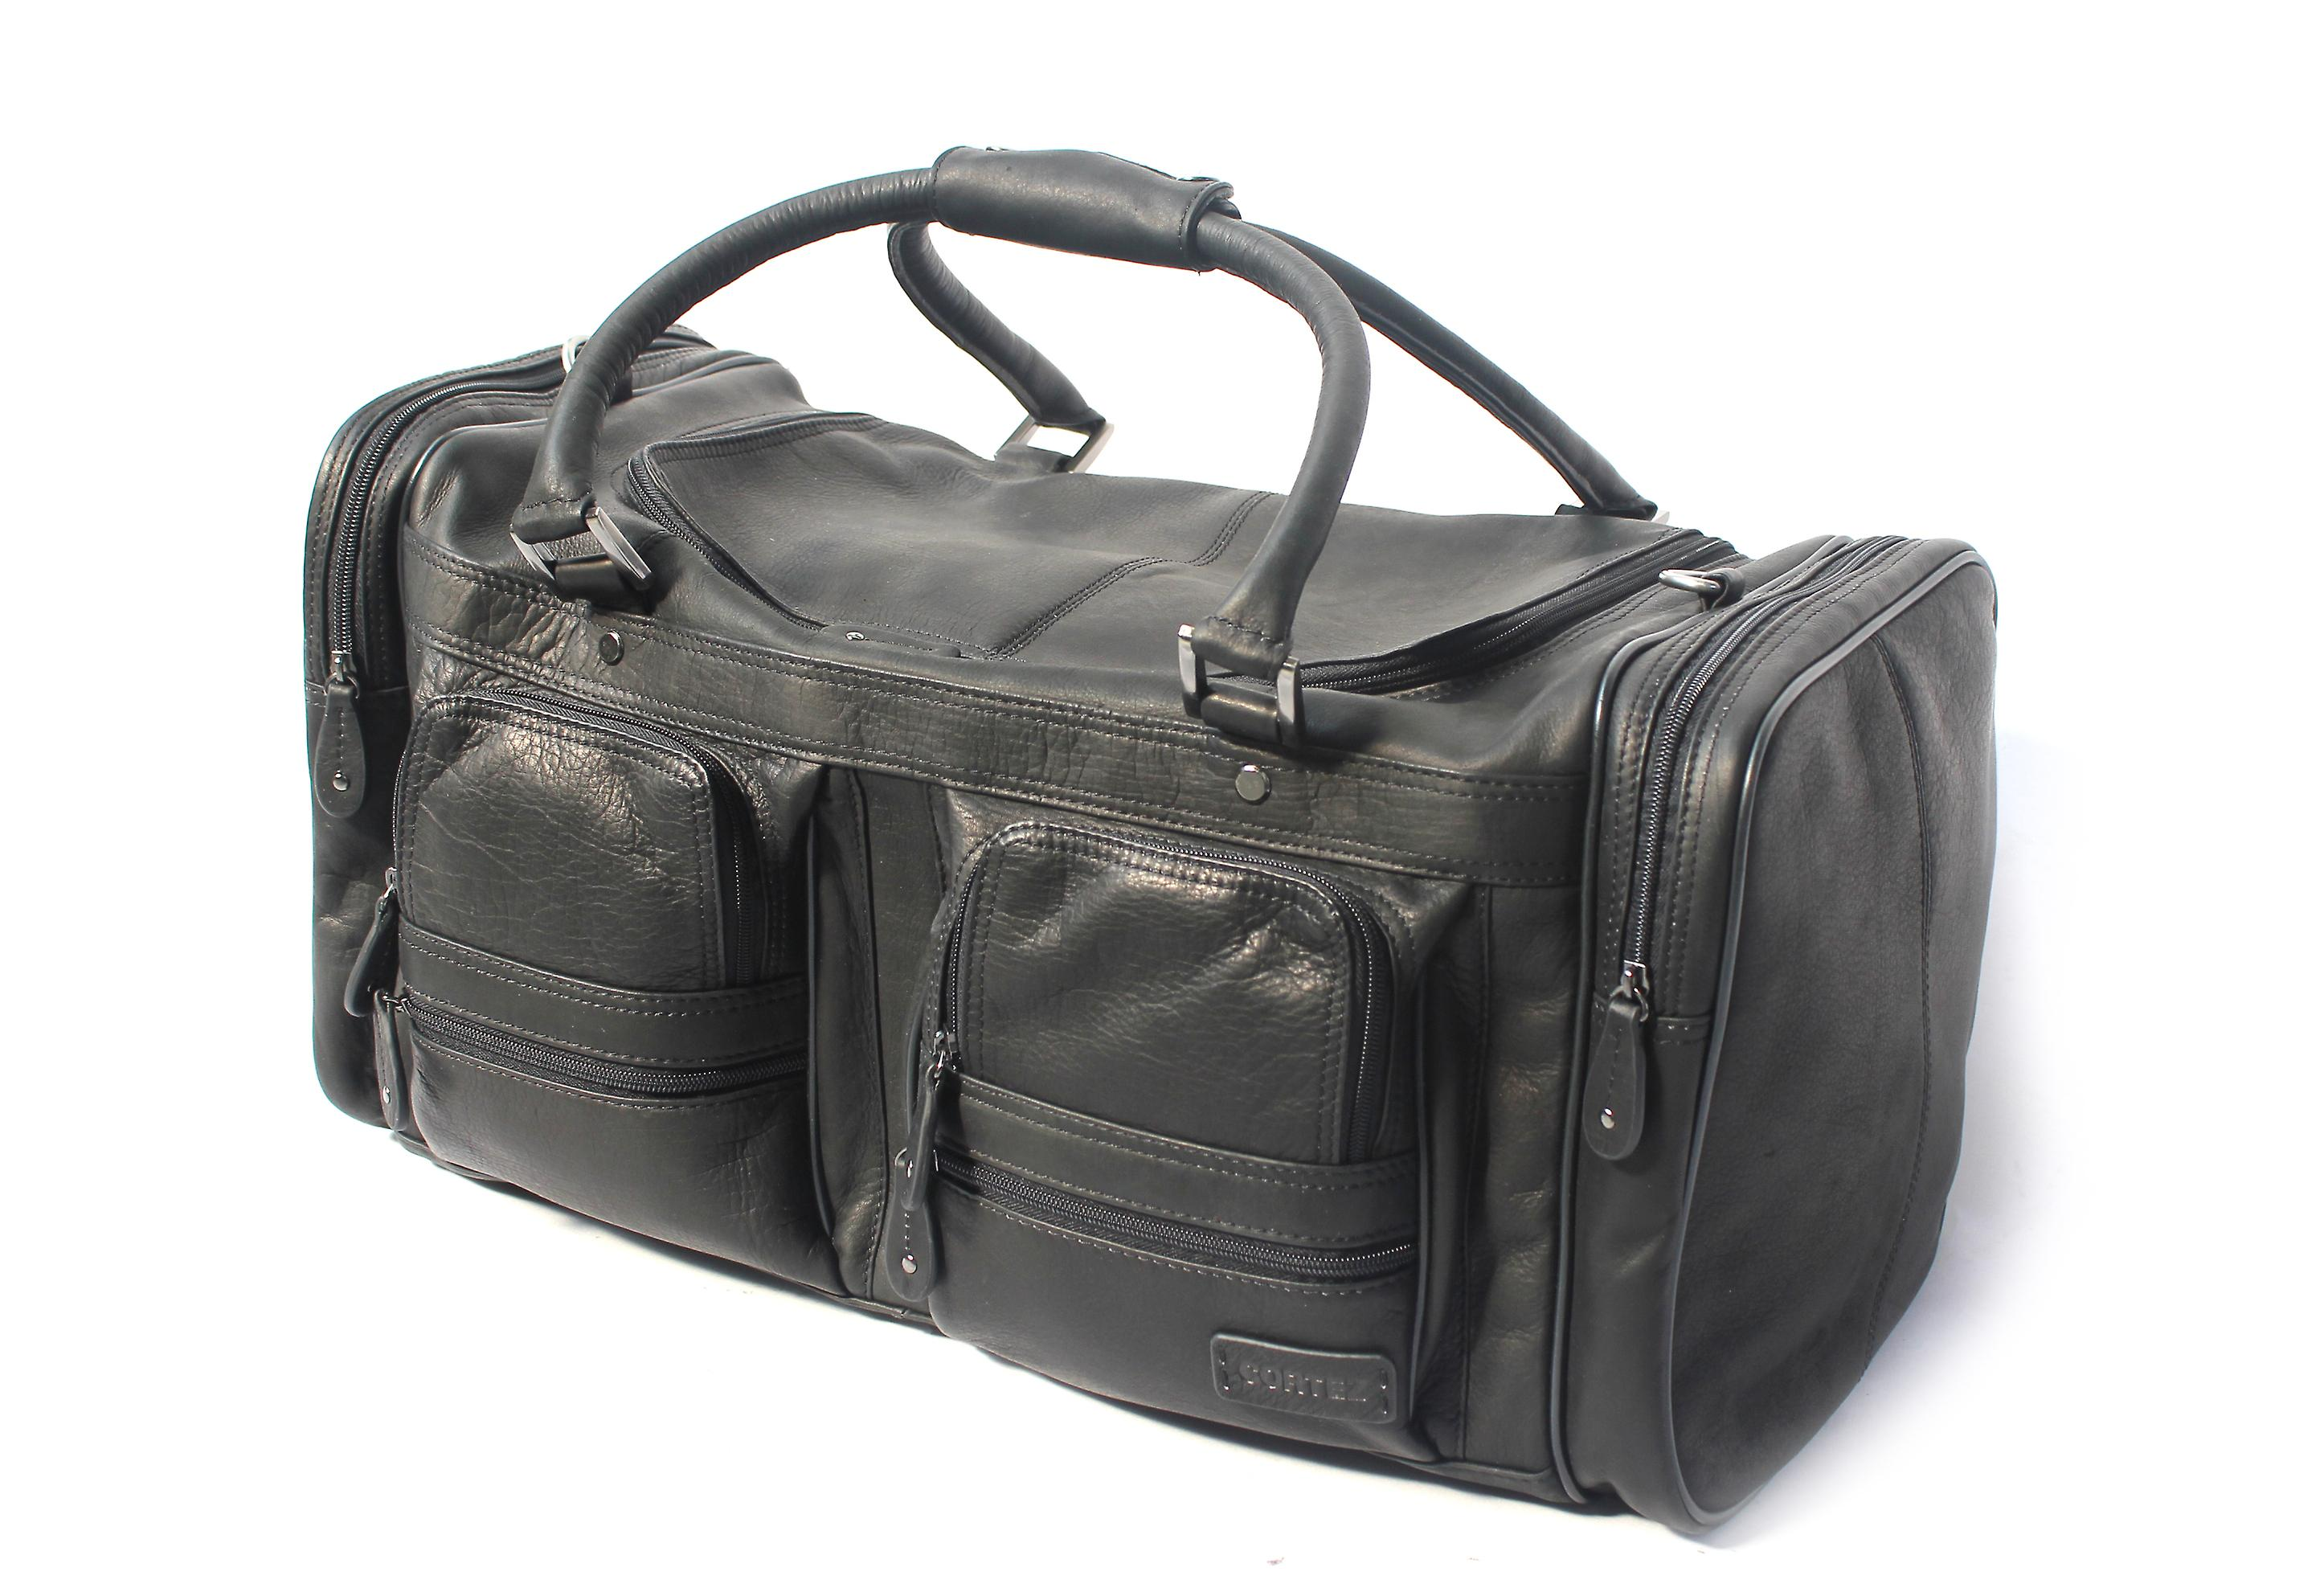 Cortez Colombian Leather Cargo Holdall Large Travel Bag Overnight Weekend Case